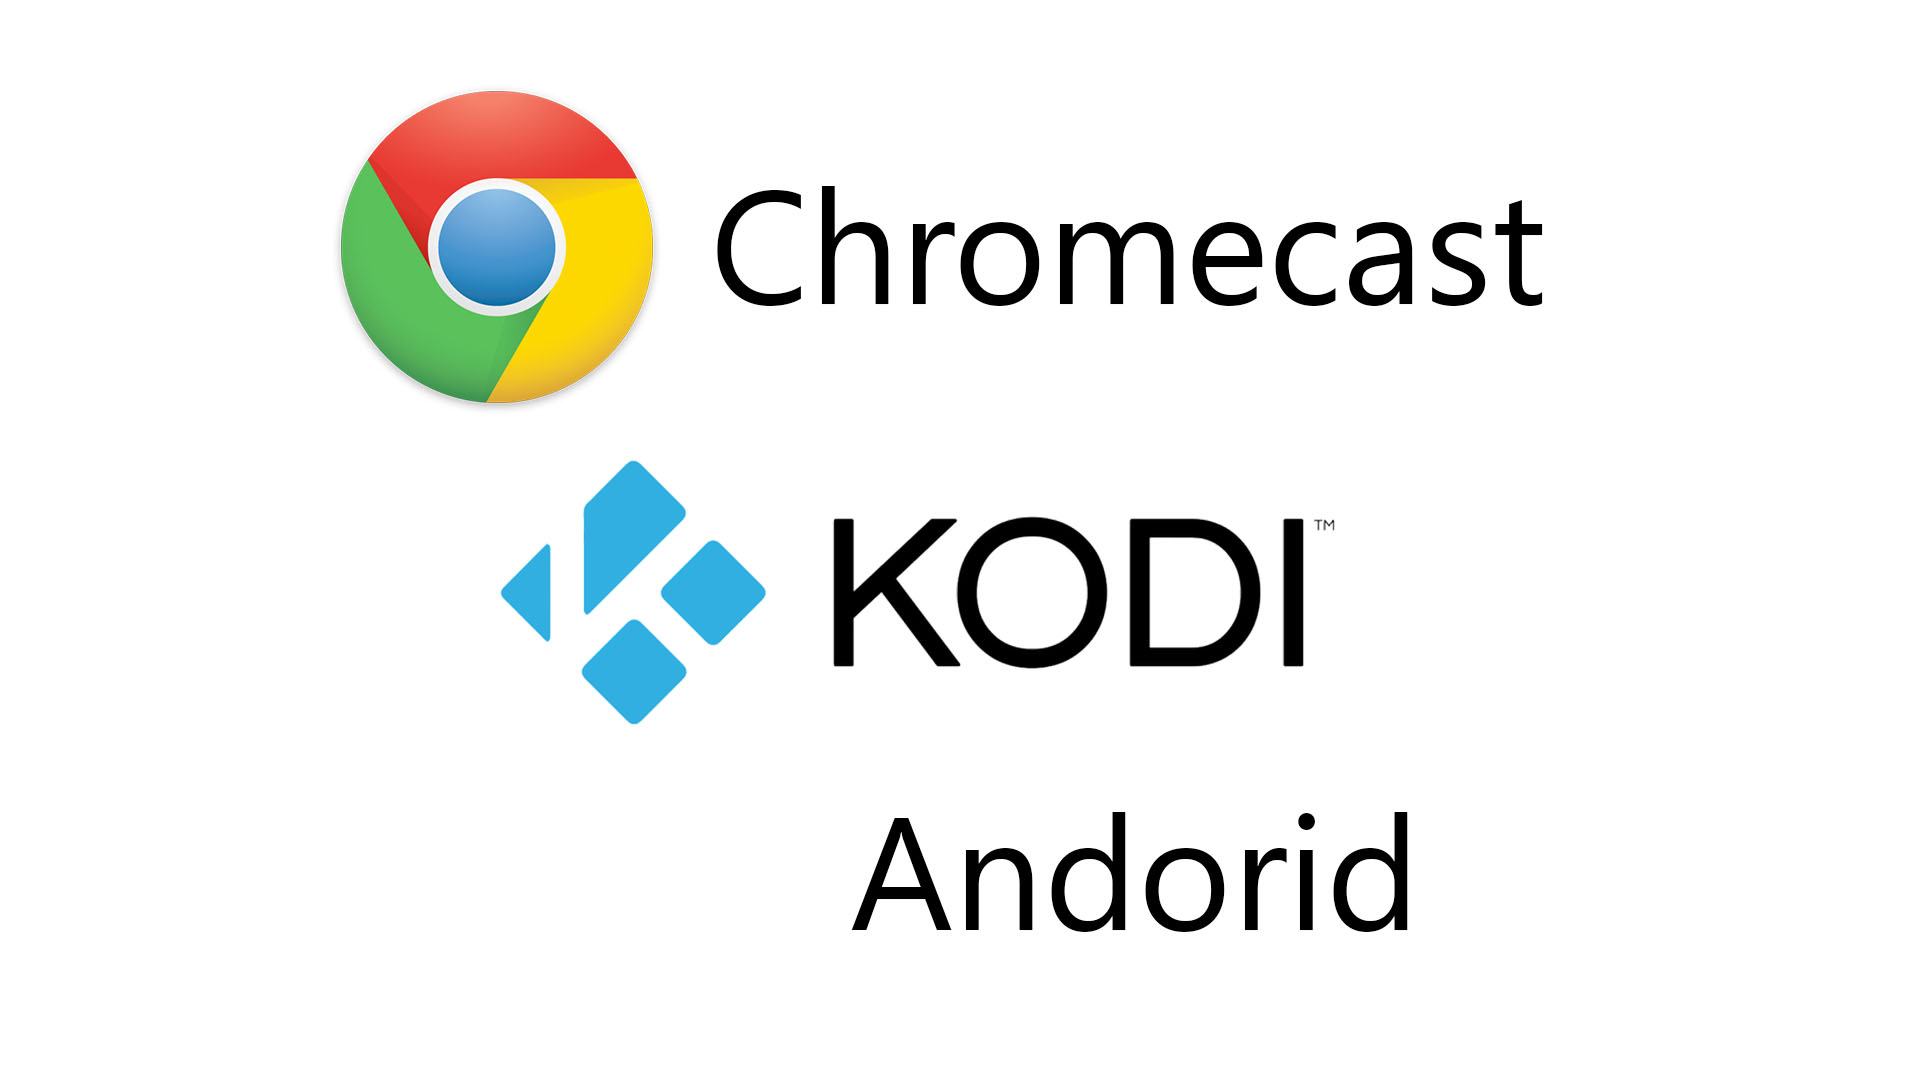 How to Stream Kodi to Chromecast from Android